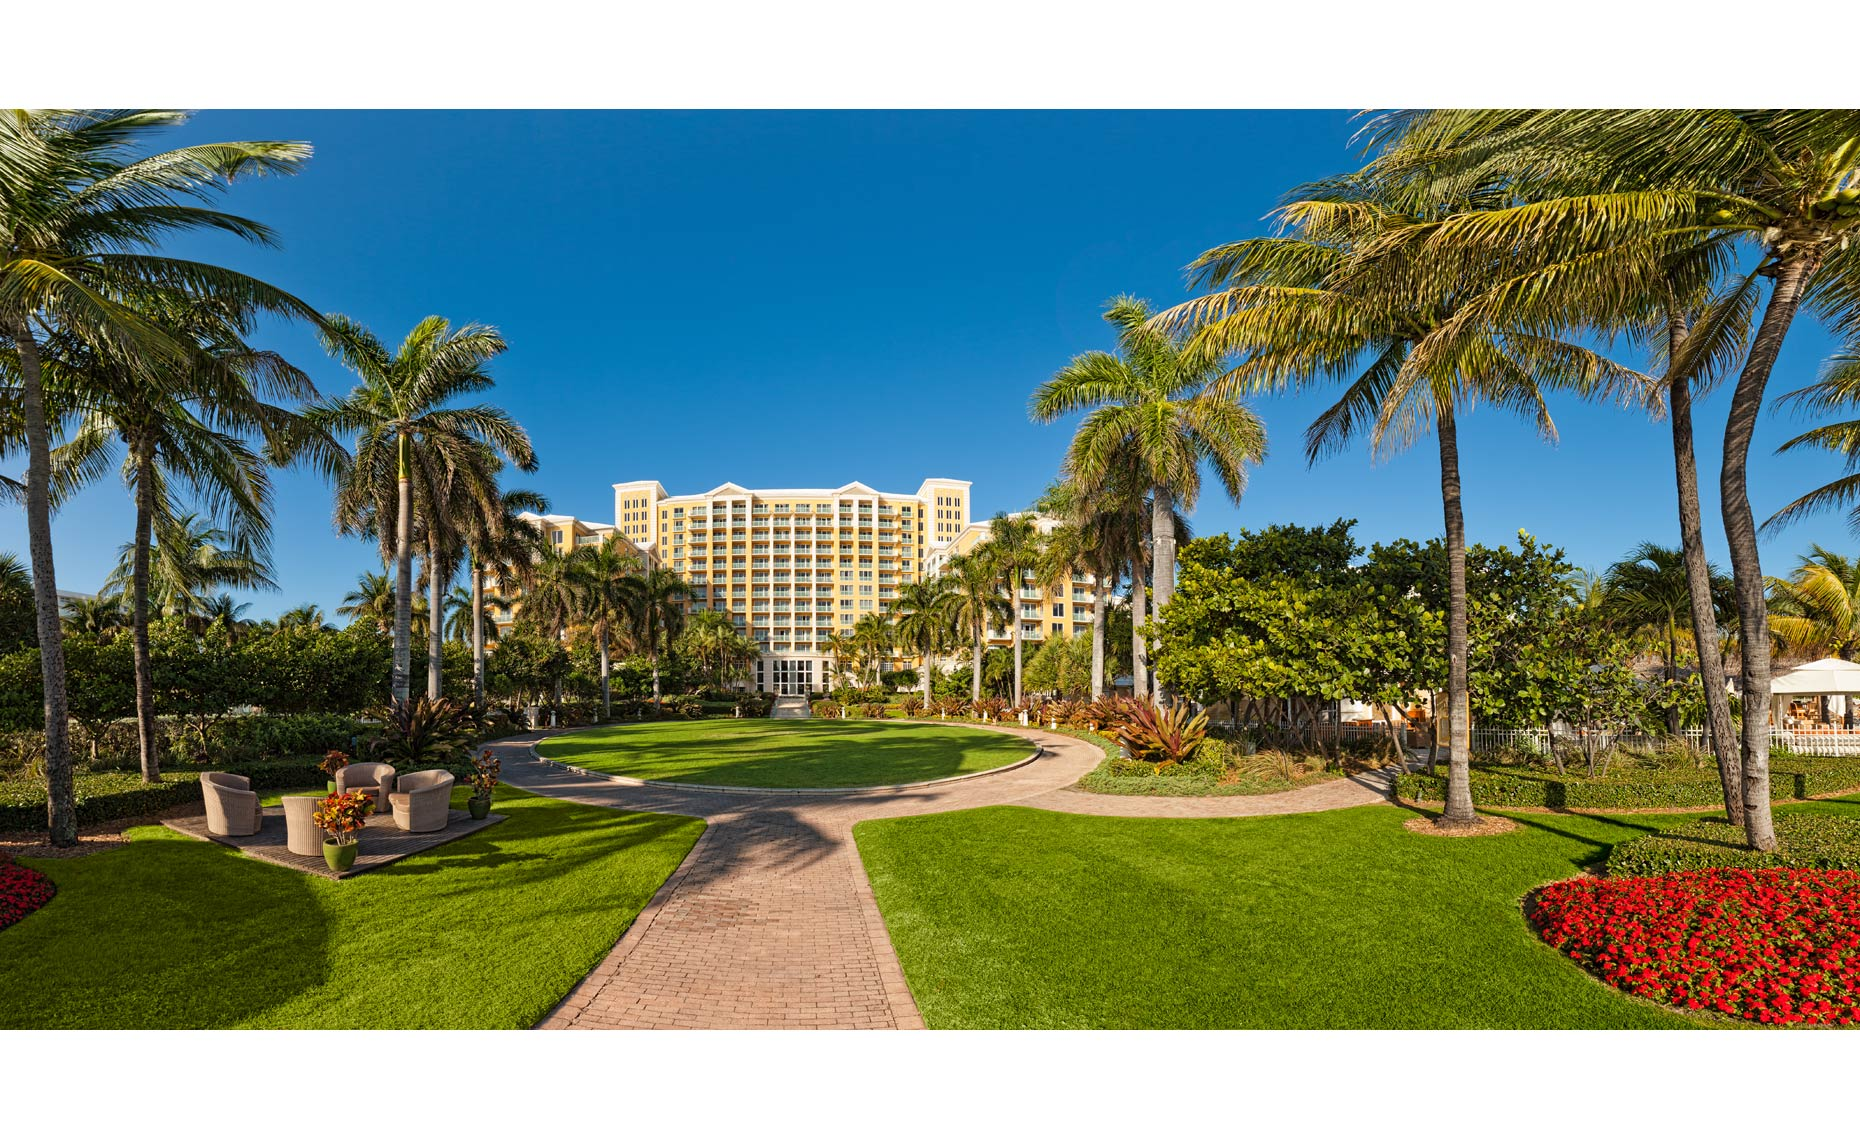 Ritz Carlton Key Biscayne Miami